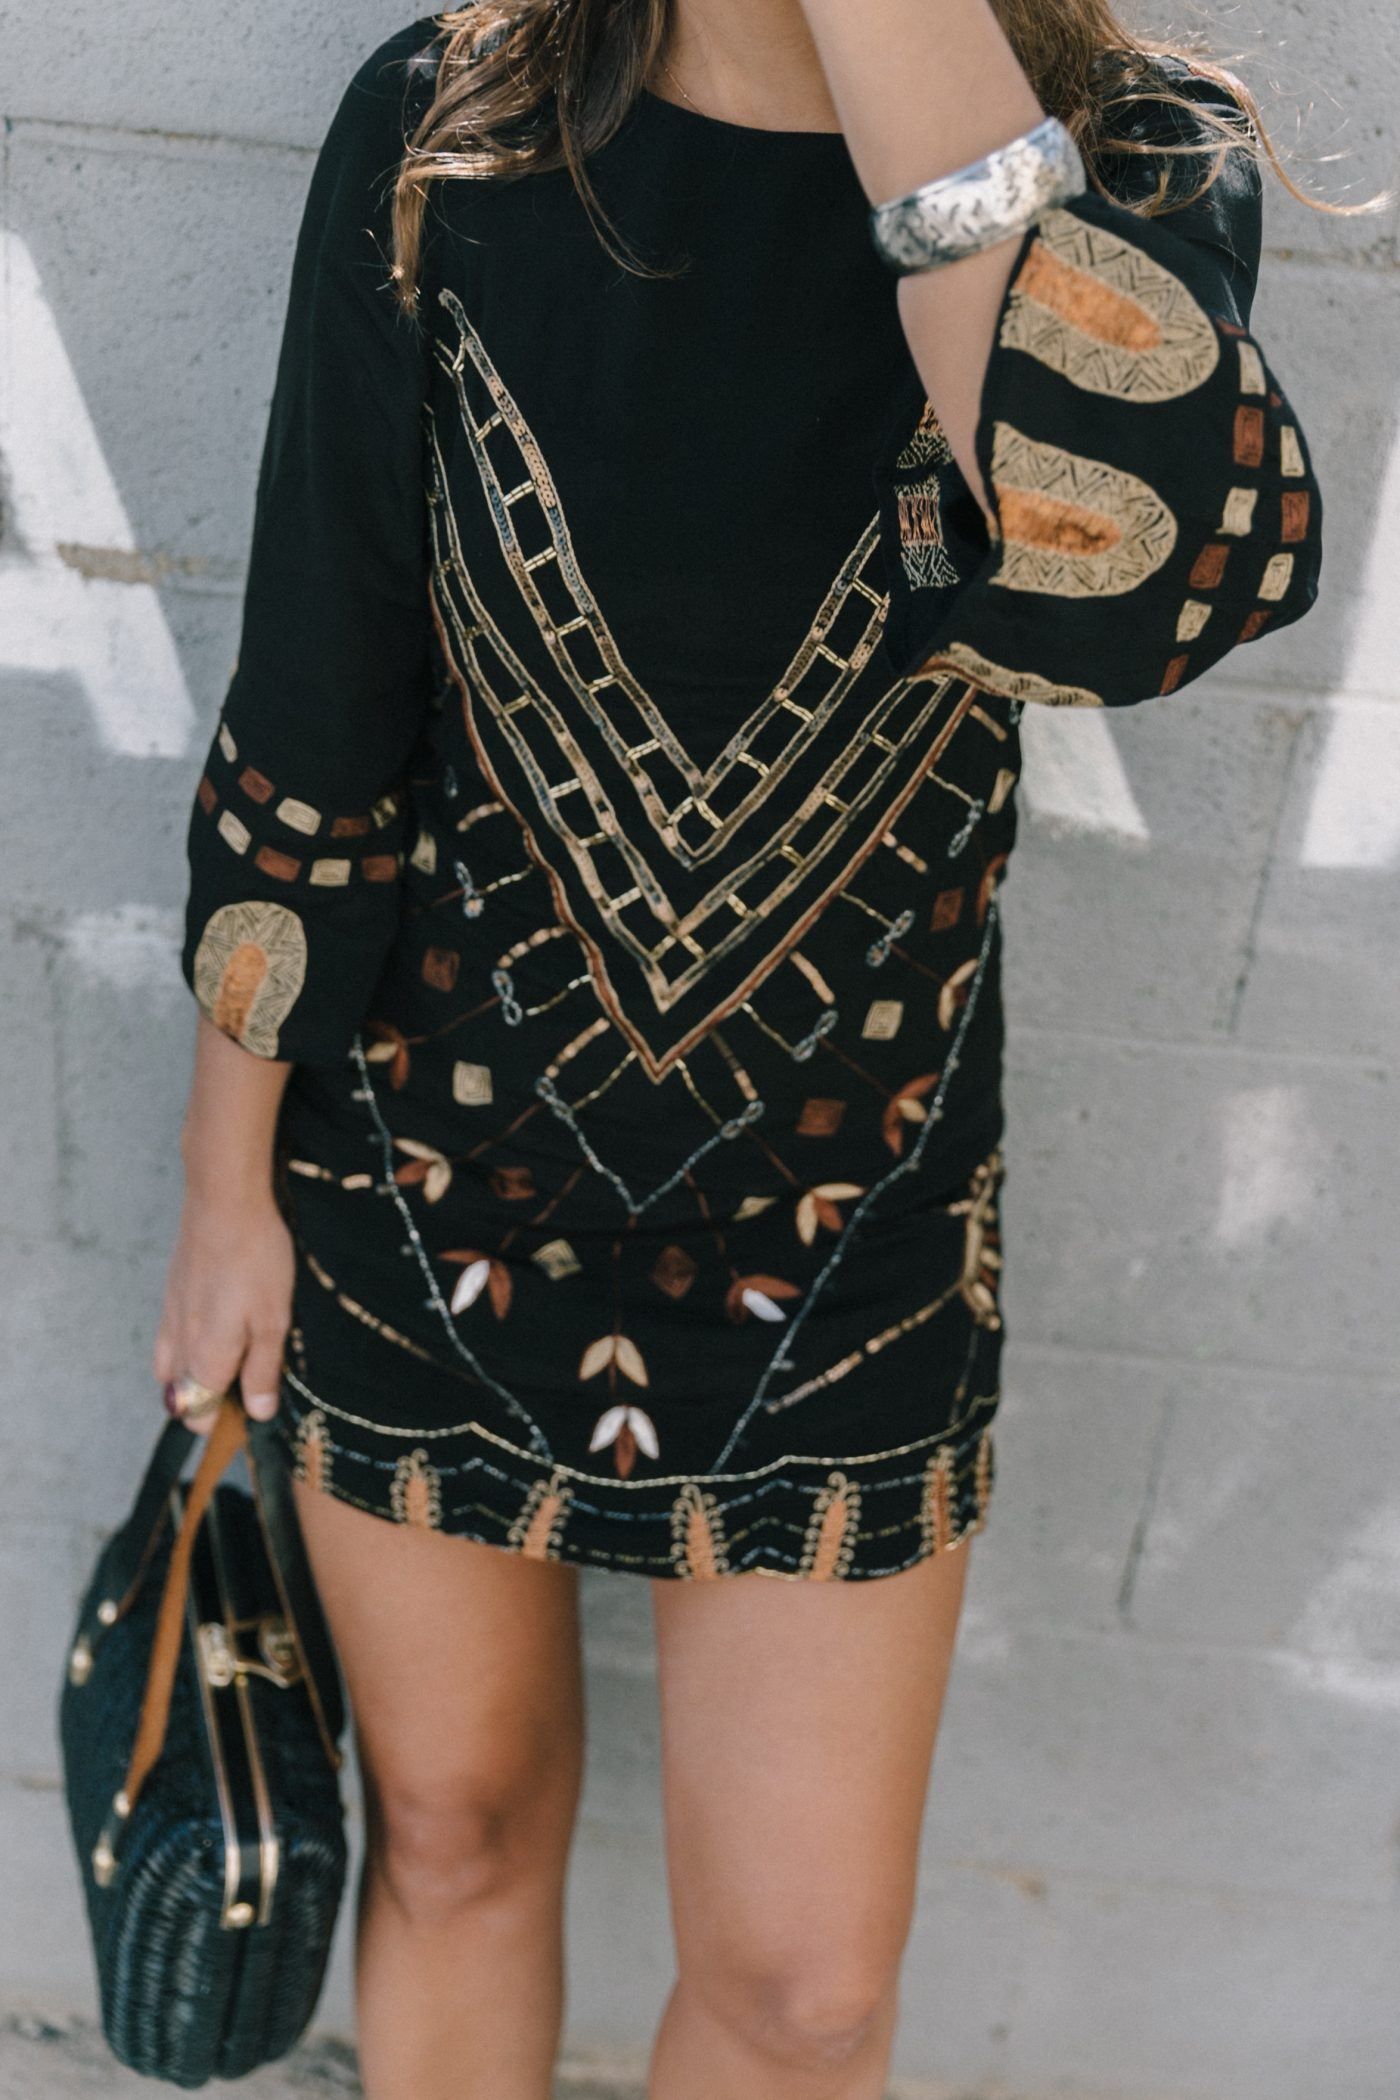 Boho_Dress-Jens_Pirate_Booty-Black_Beaded_Dress-Lace_Up_Sandals-Los_Angeles-Outfit-Collage_Vintage-72